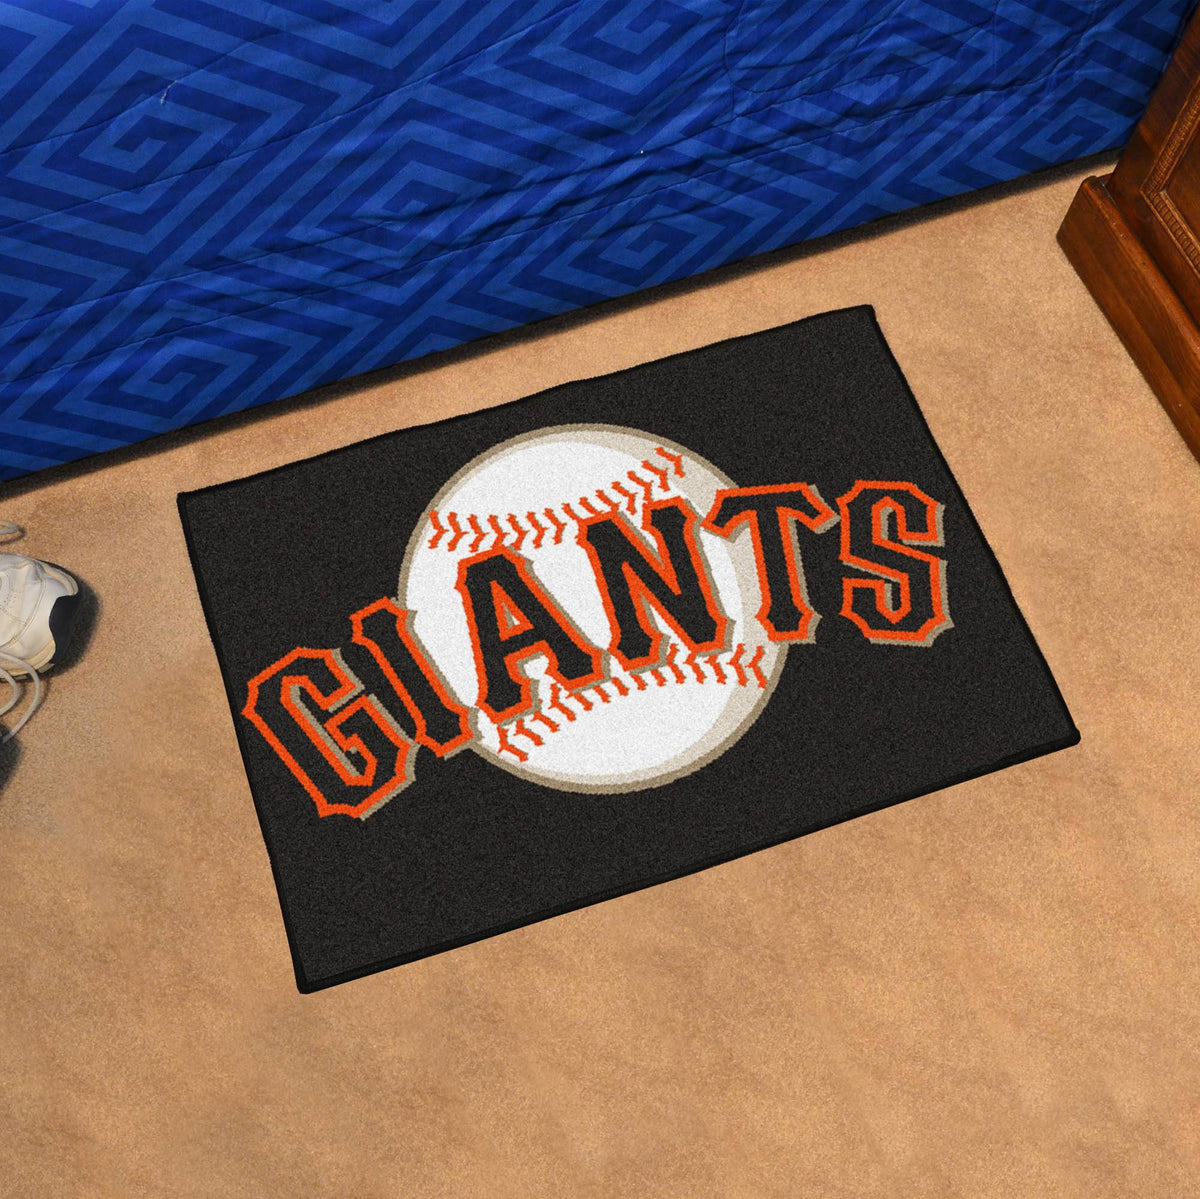 MLB - Starter Mat MLB Mats, Rectangular Mats, Starter Mat, MLB, Home Fan Mats San Francisco Giants